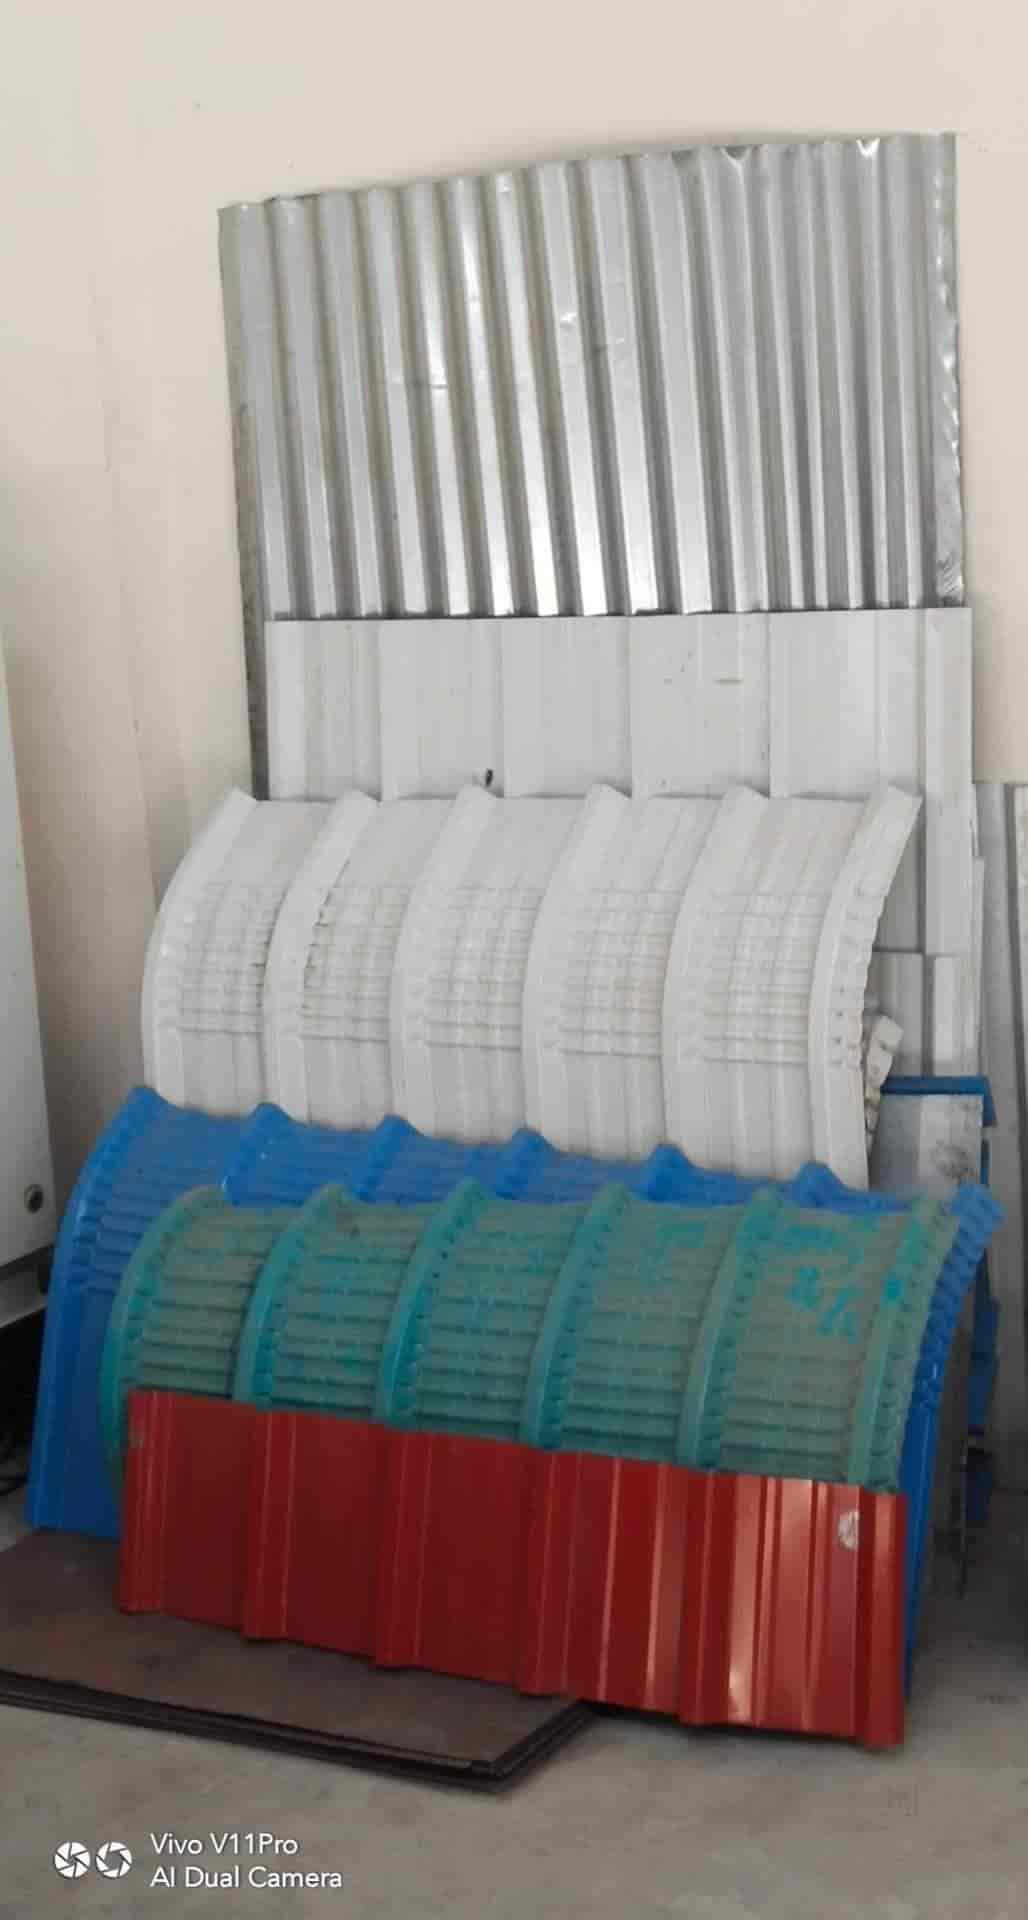 Shree Balaji Industries Sangamner Colour Coated Roofing Sheet Manufacturers In Ahmednagar Justdial